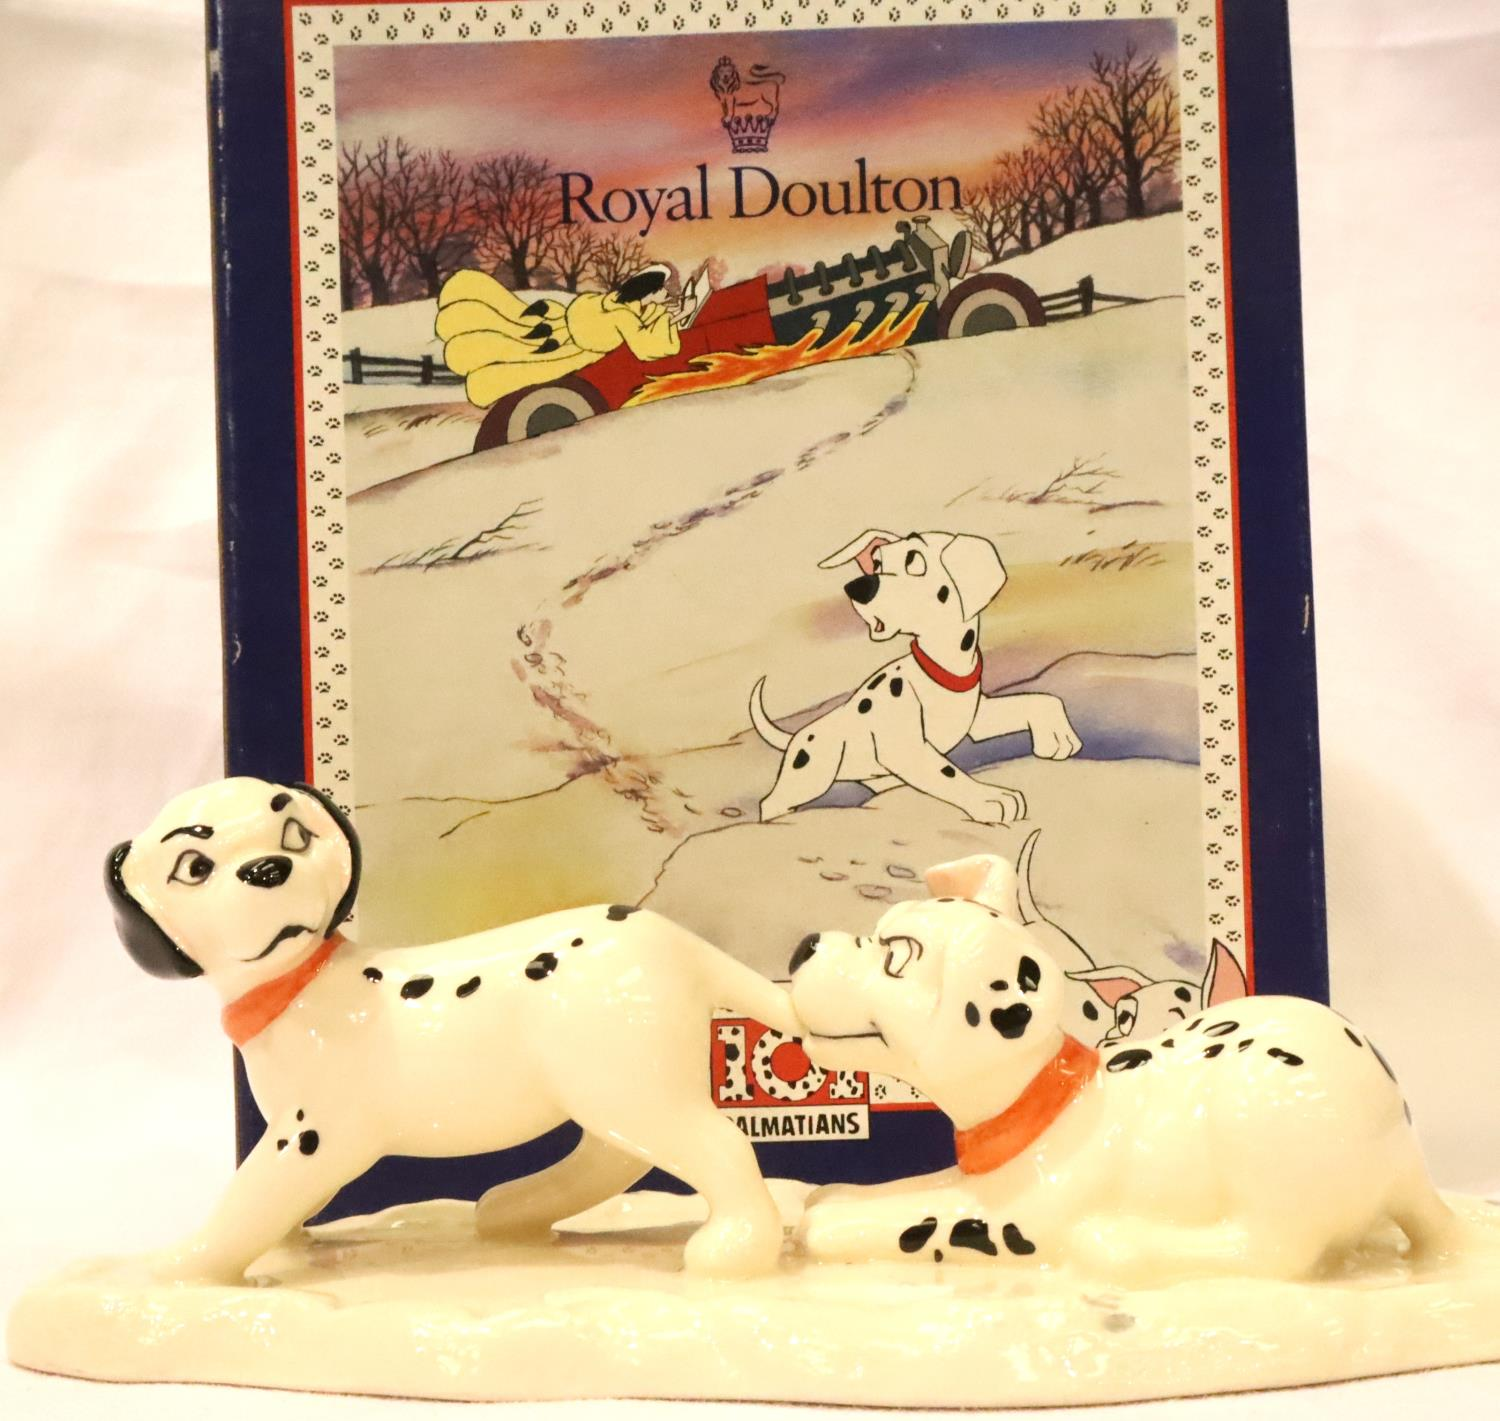 Royal Doulton limited edition Dalmatians figurine, Lucky and Freckles on ice, L: 7 cm. P&P Group